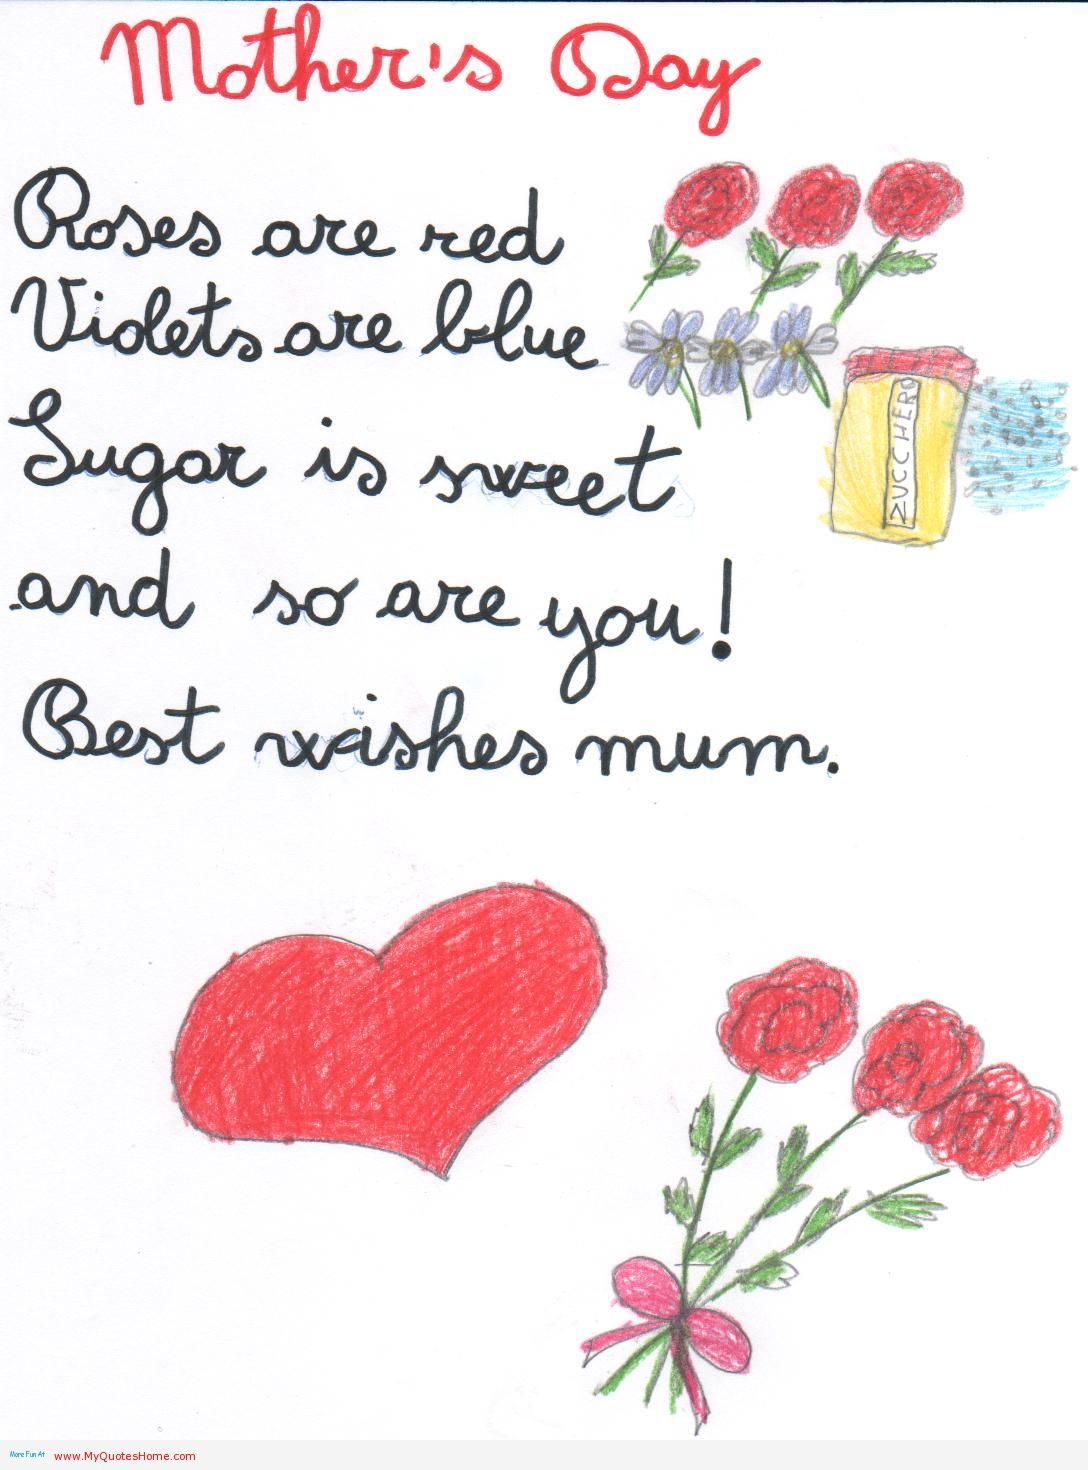 """ Mother's Day, Roses Are Red, Violets Are Blue, Sugar Is Sweet, And So Are You! Best Wishes Mum """